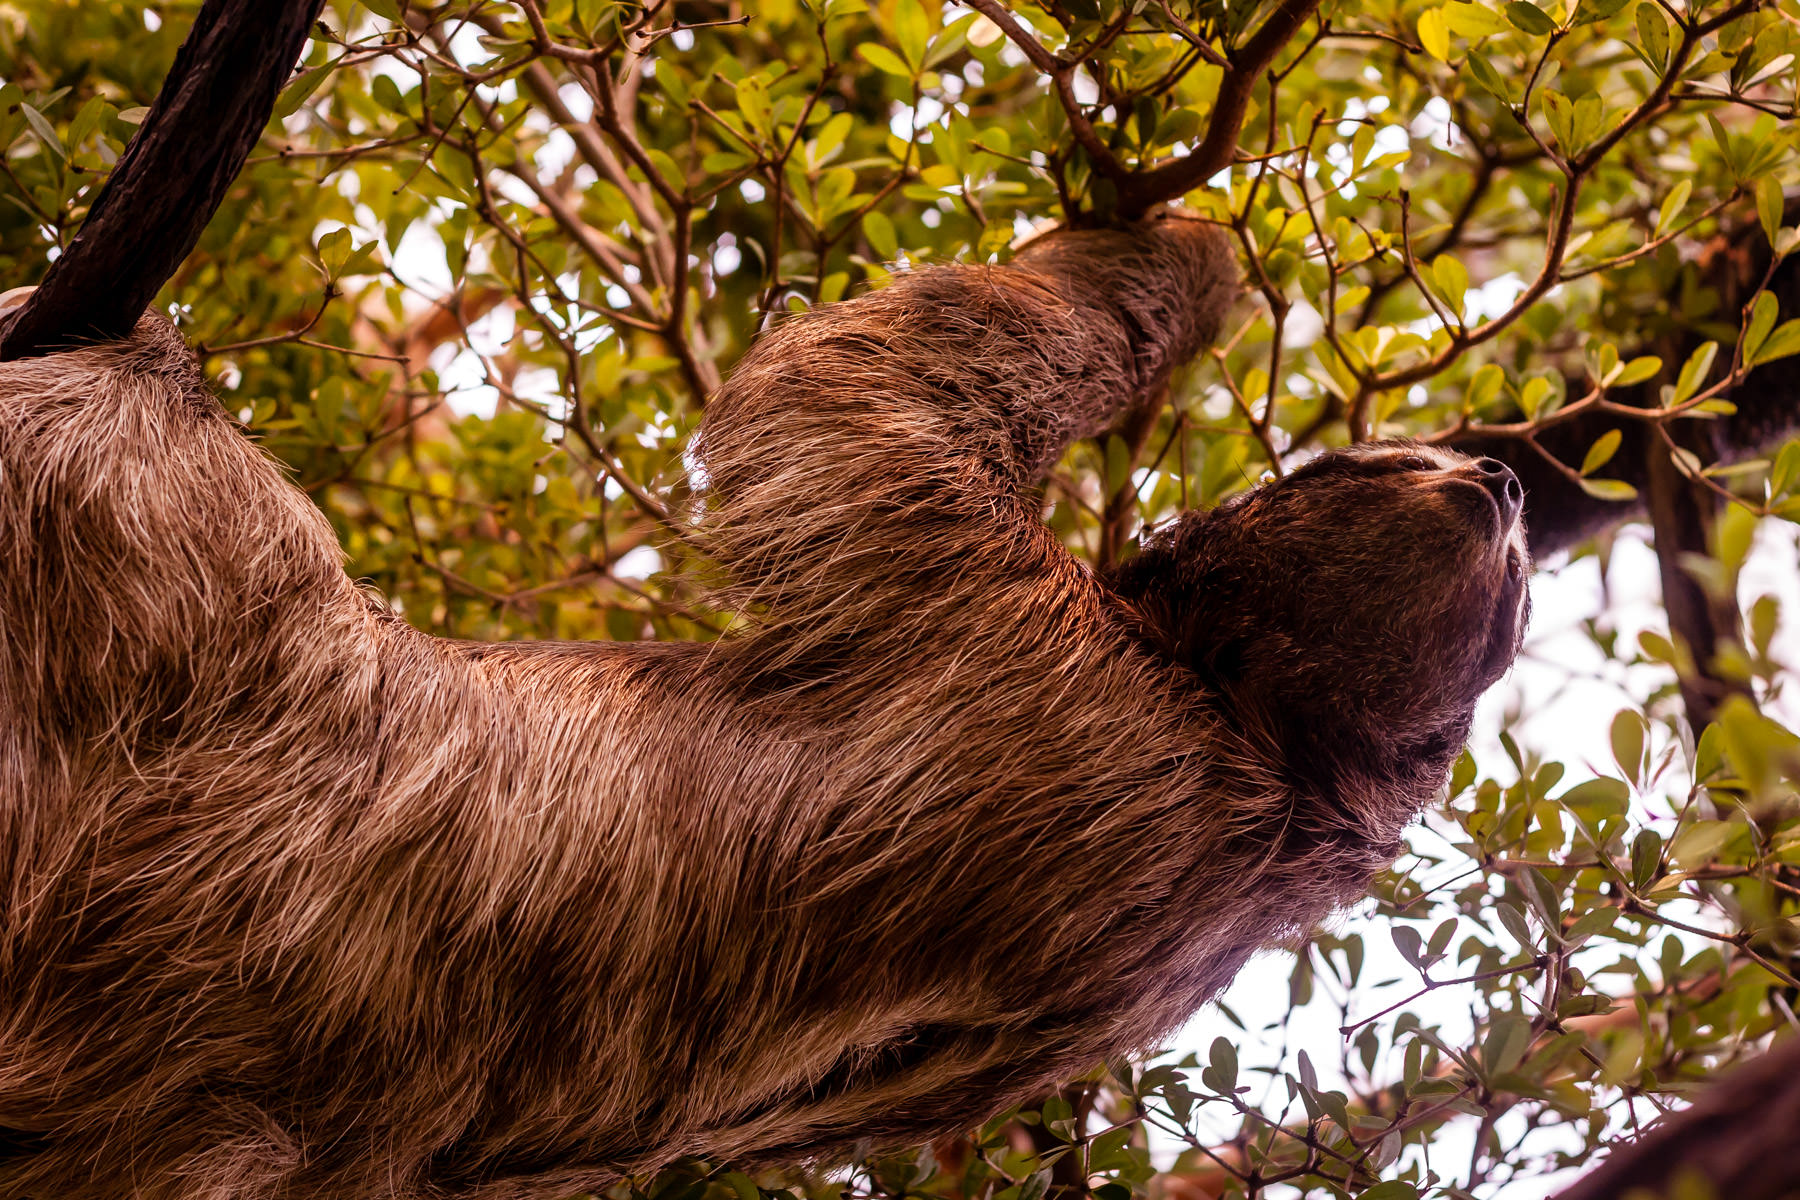 A three-toed sloth at the Dallas World Aquarium climbs though a tree's branches.